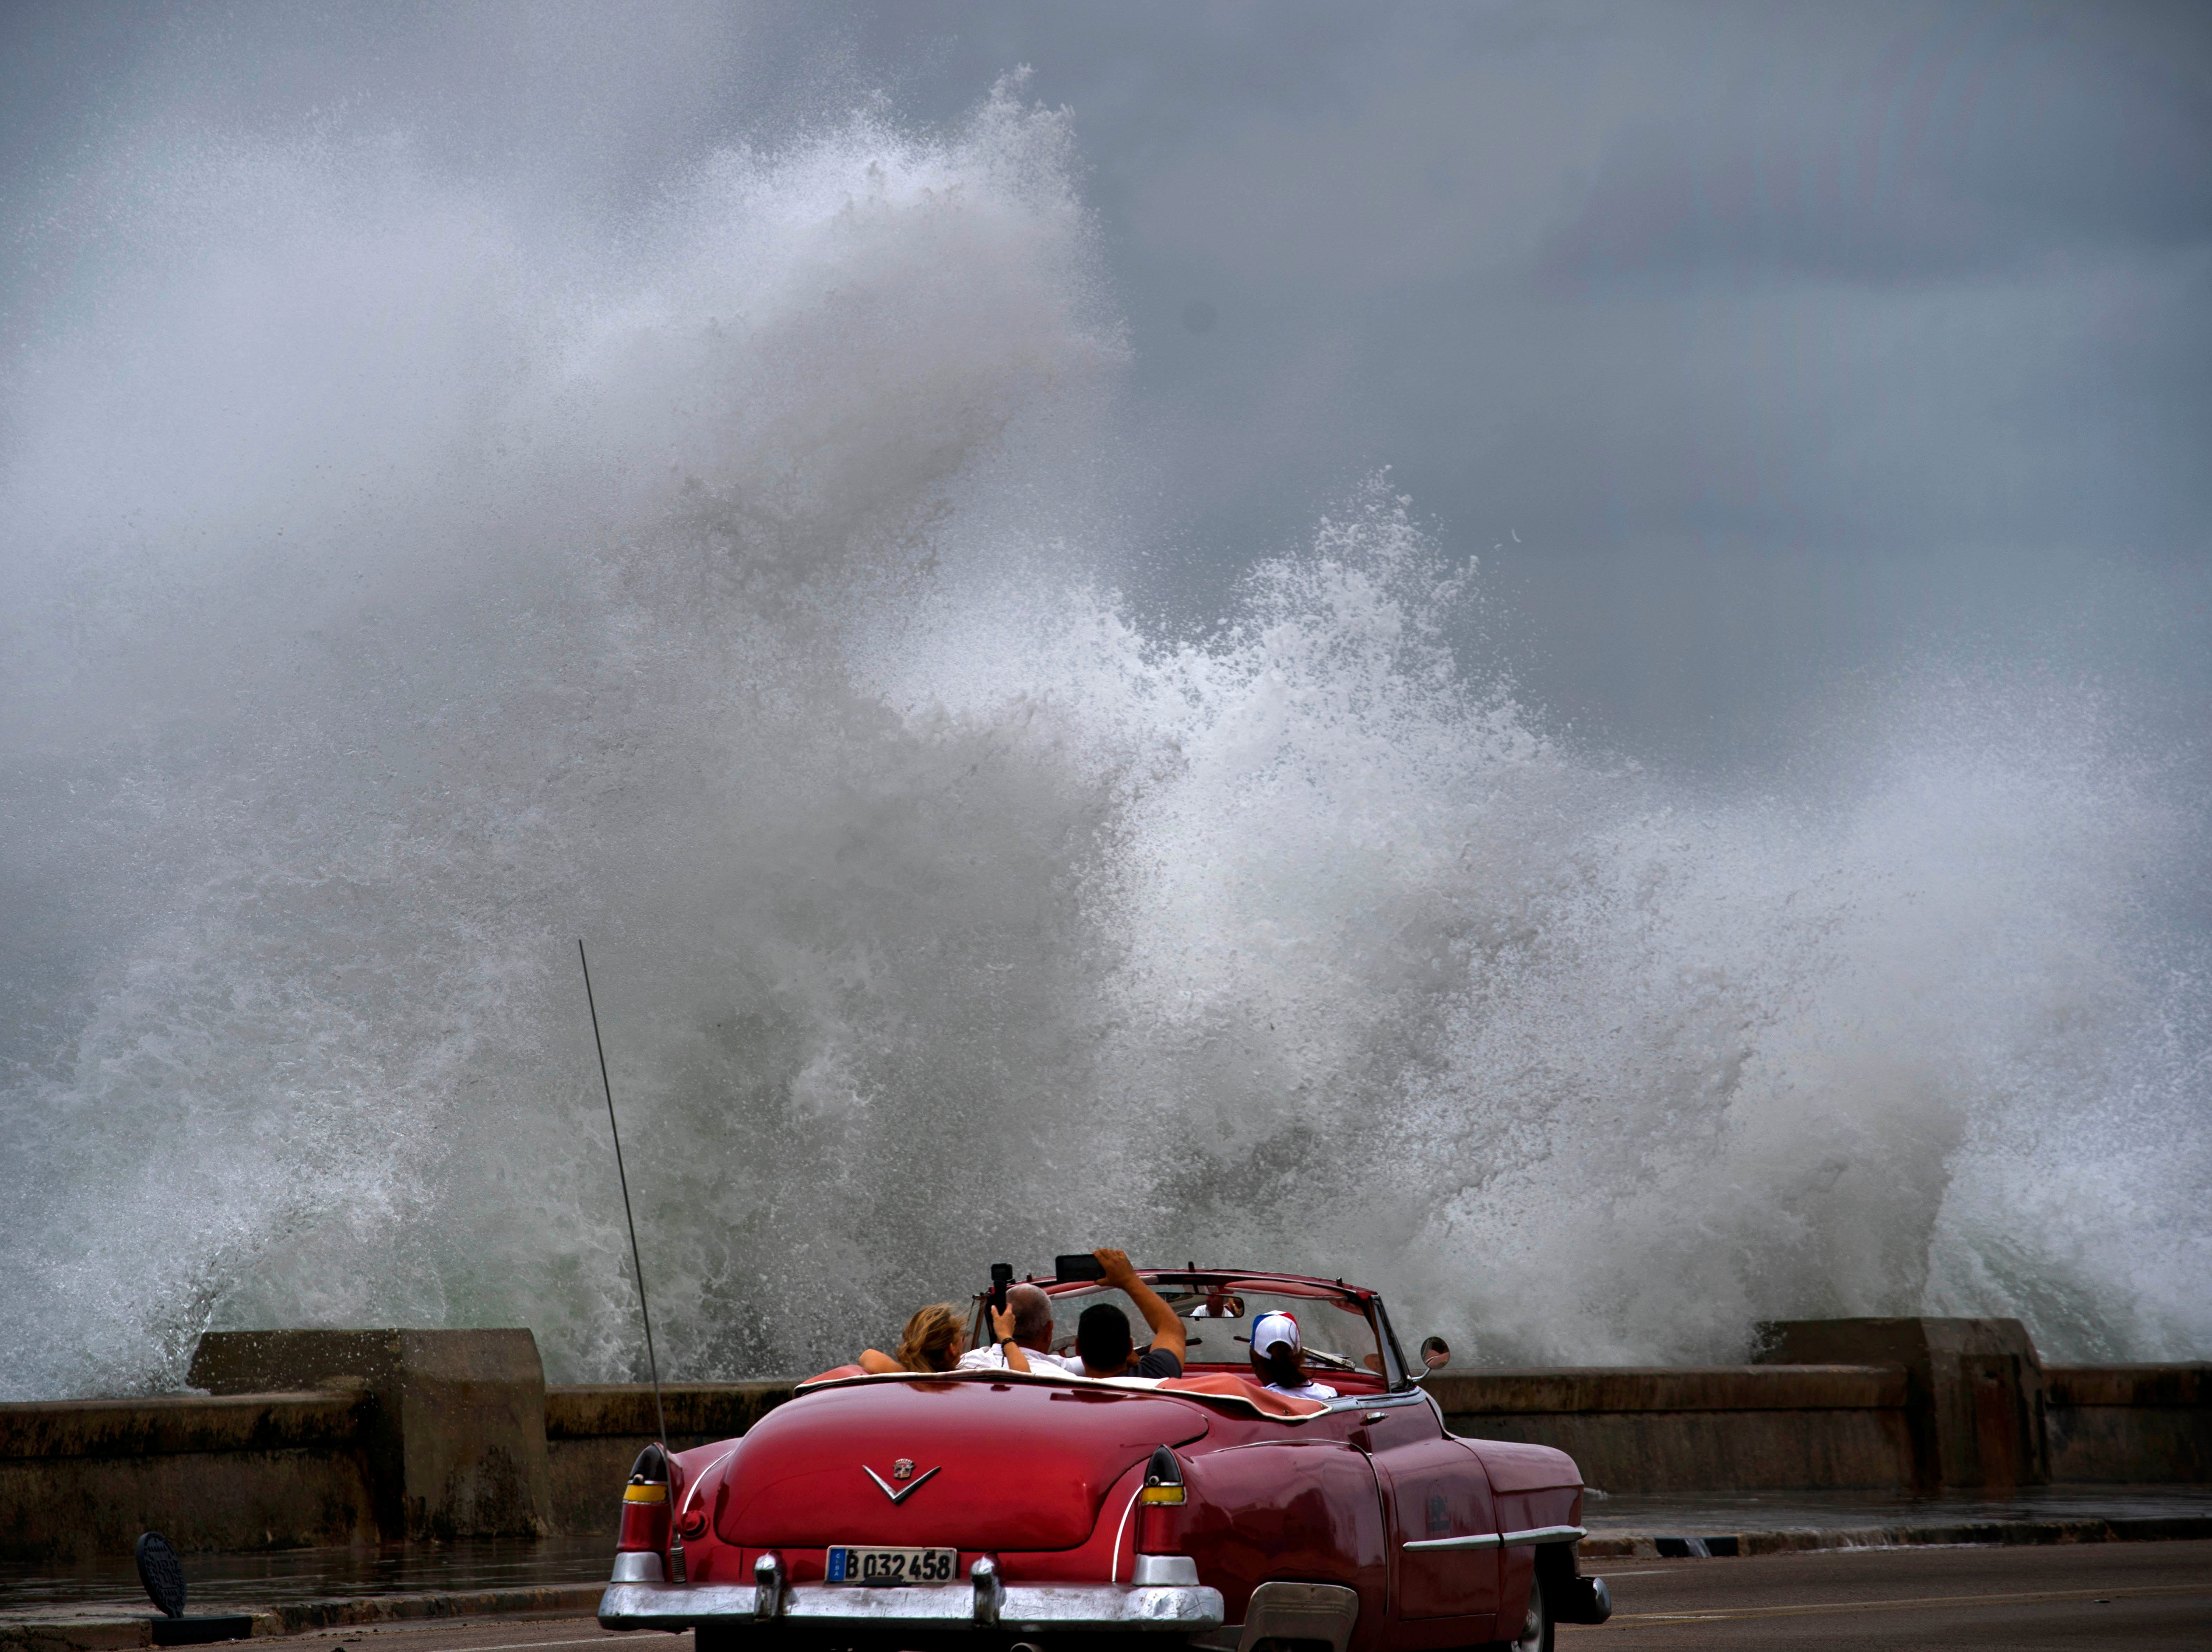 Waves crash against the Malecon, triggered by the outer bands of Hurricane Michael, as tourists drive past in a classic American car in Havana, Cuba, Tuesday, Oct. 9, 2018. A fast and furious Hurricane Michael is churning toward the Florida Panhandle with 110 mph winds and a potential storm surge of 12 feet, giving tens of thousands of people precious little time to get out.